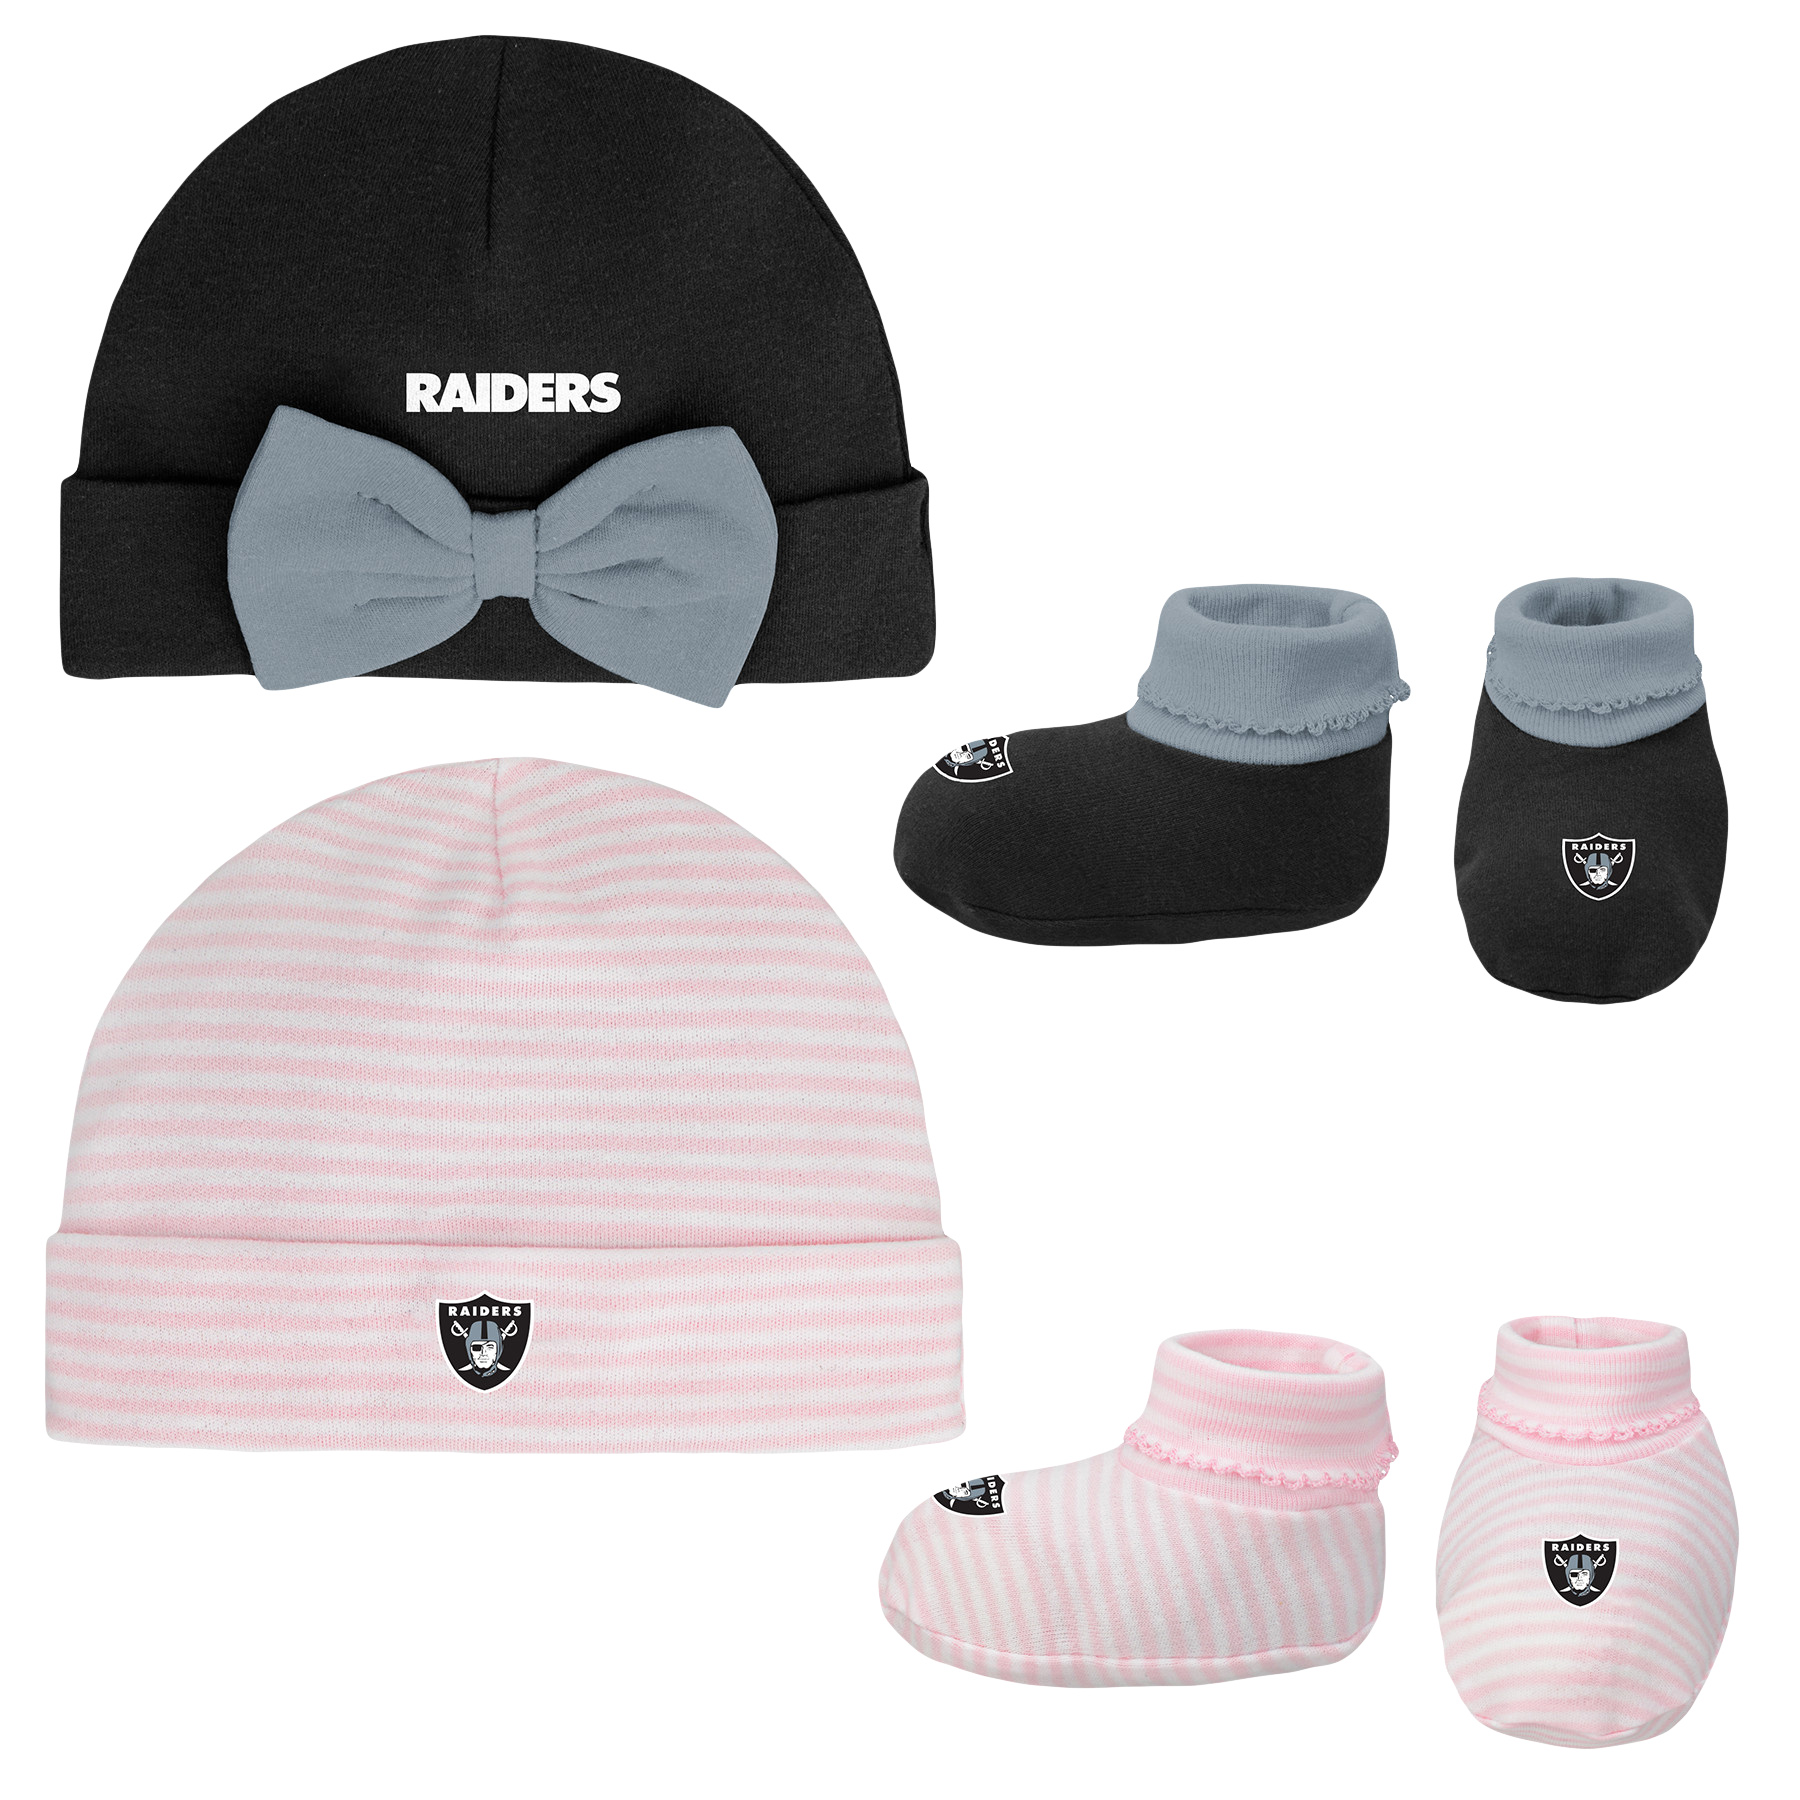 Girls Newborn & Infant Black/Pink Oakland Raiders Cuffed Knit Hat & Booties Set - Newborn